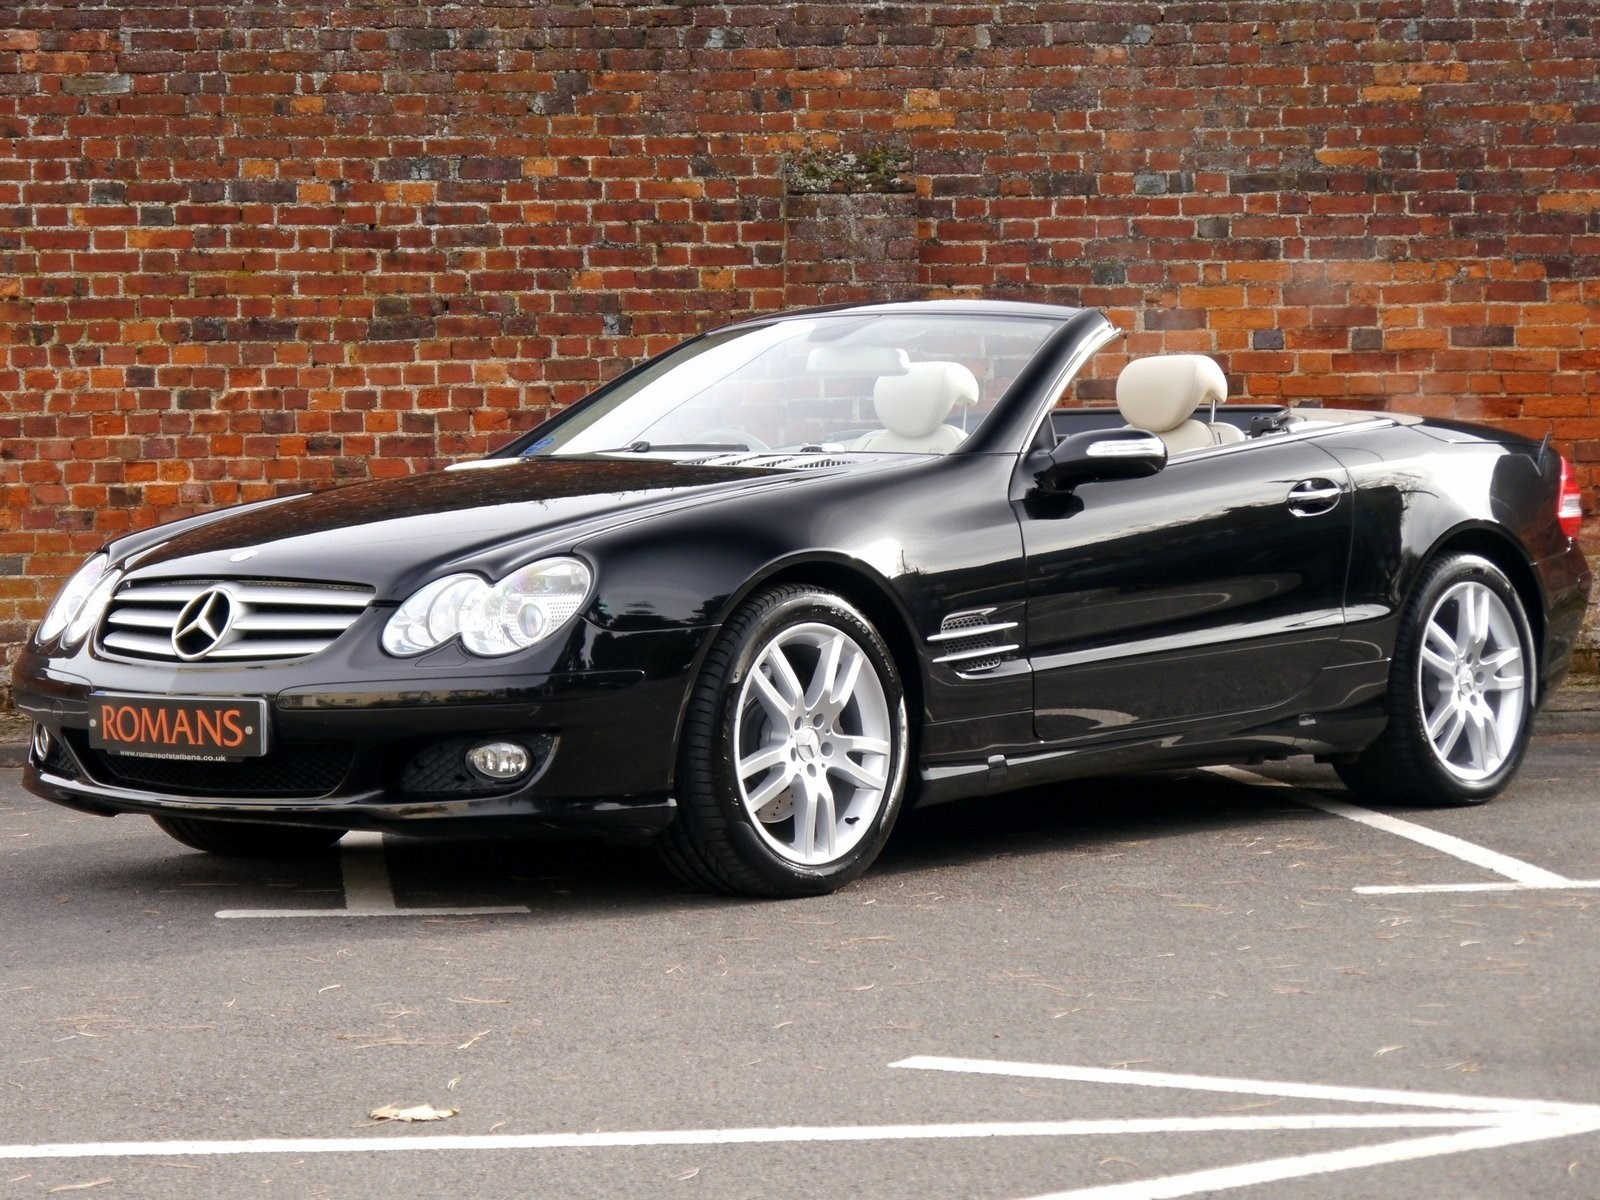 Mercedes benz sl 350 7g tronic panoramic roof fsh for sale for Mercedes benz sl 350 price